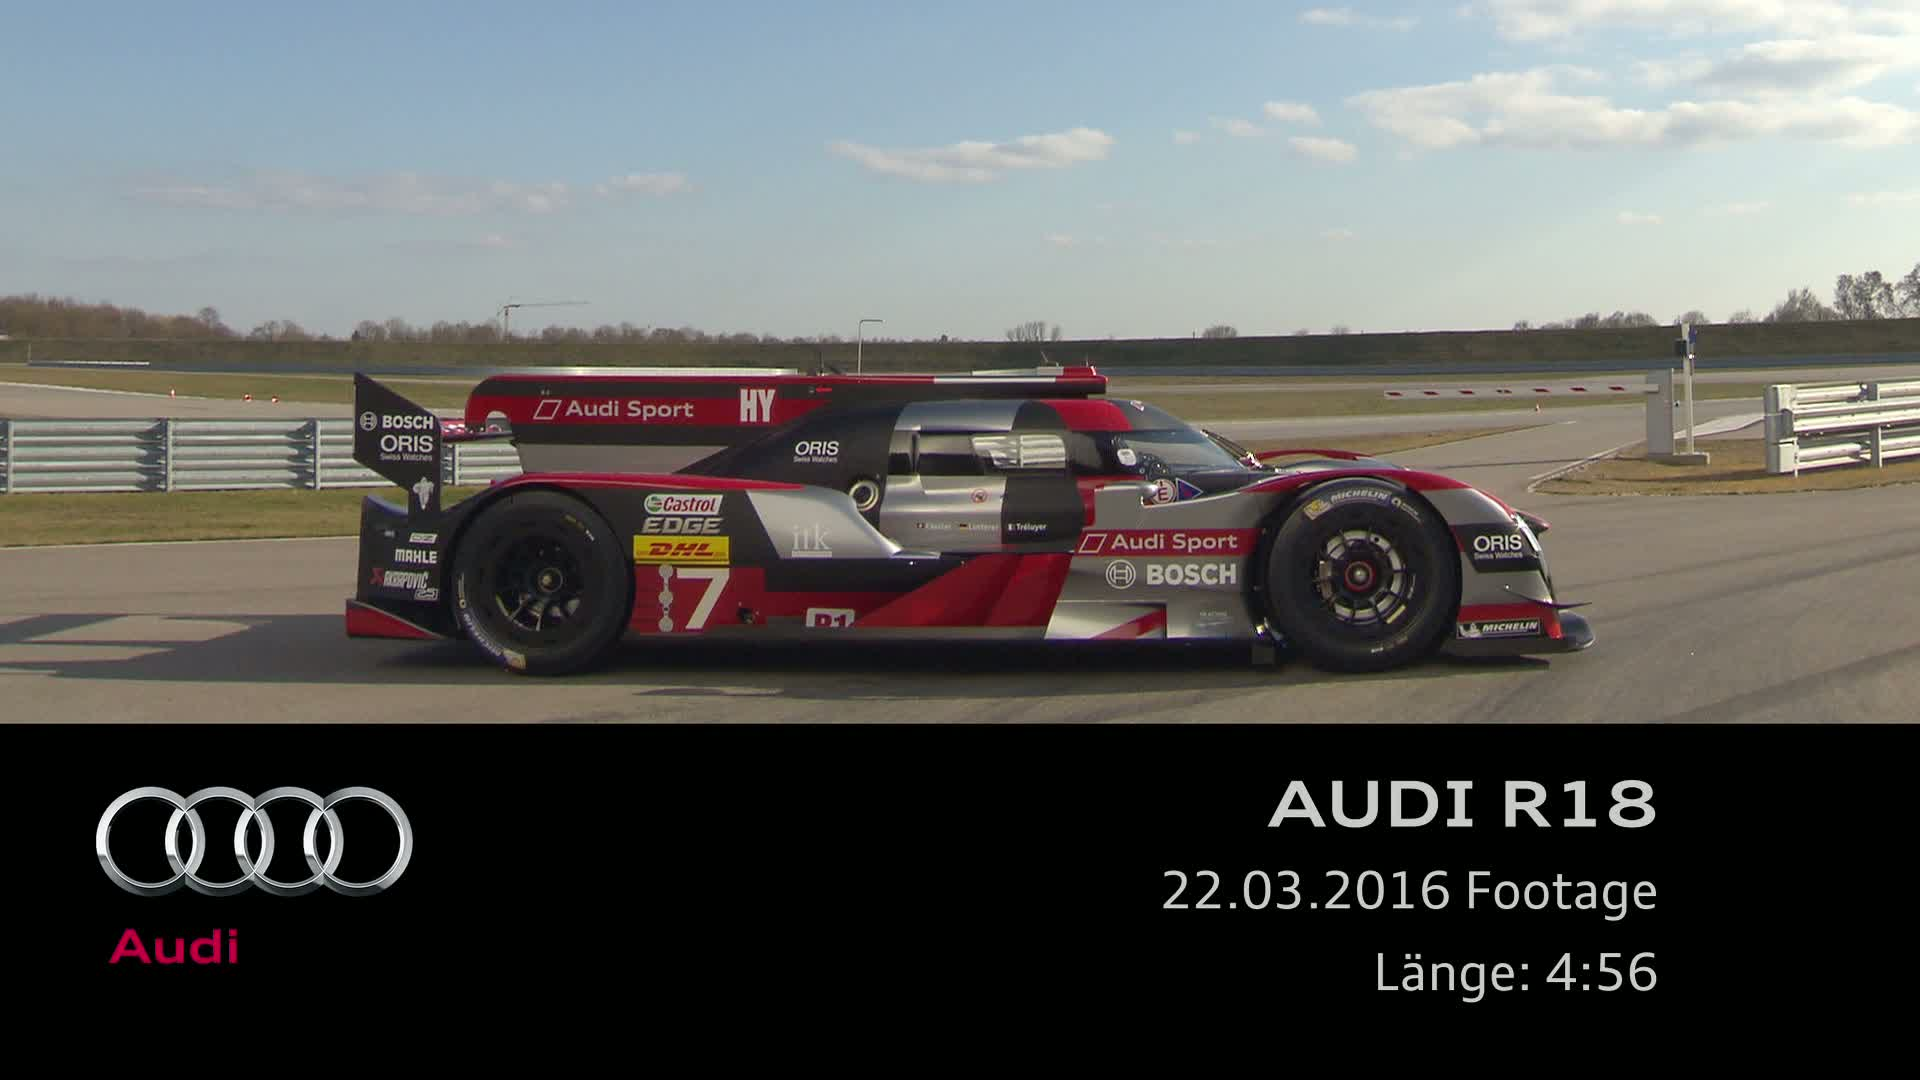 The new Audi R18 - Footage